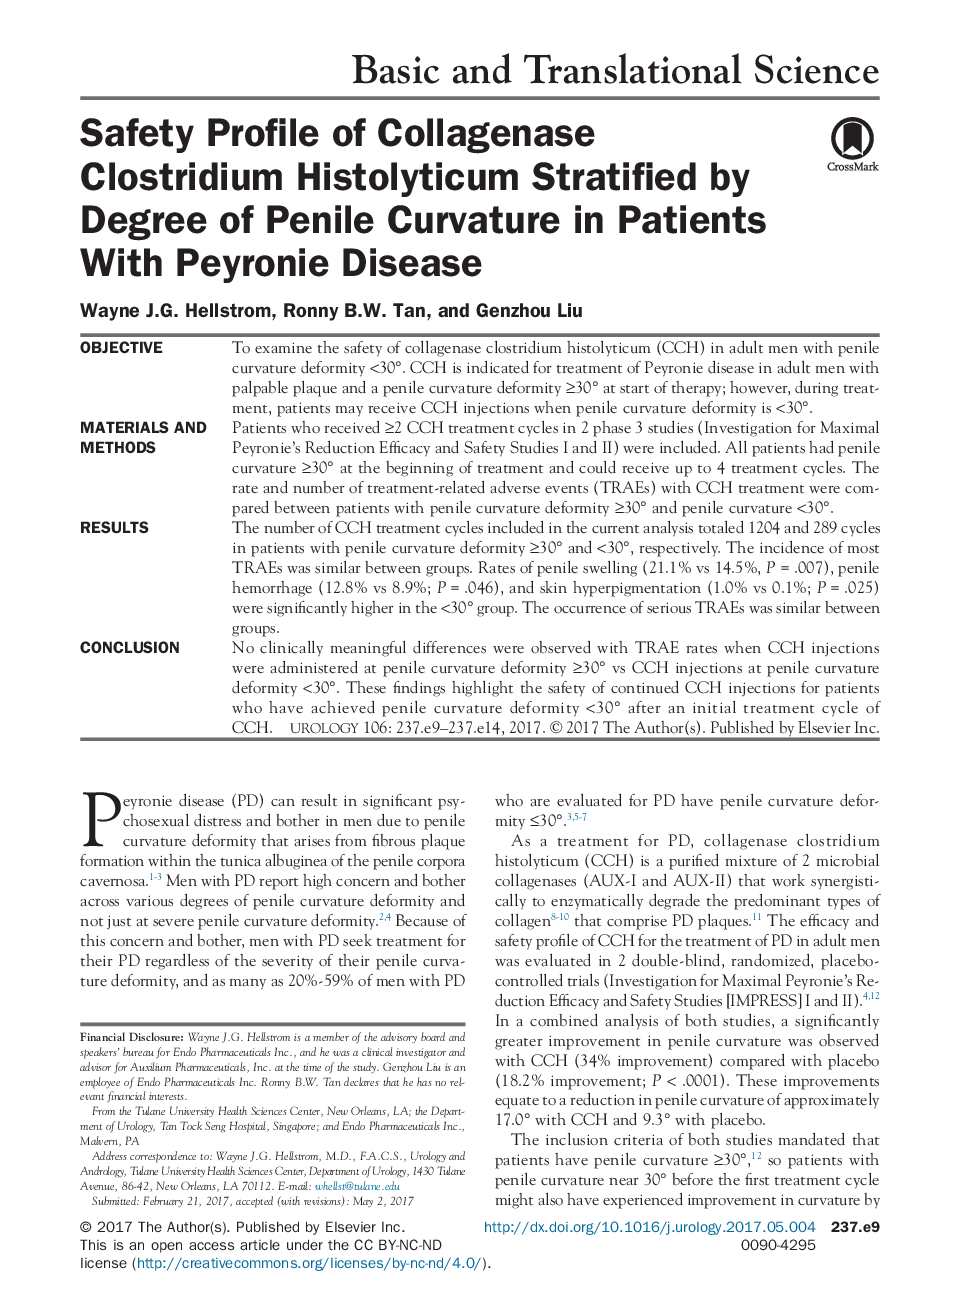 Safety Profile of Collagenase Clostridium Histolyticum Stratified by Degree of Penile Curvature in Patients With Peyronie Disease